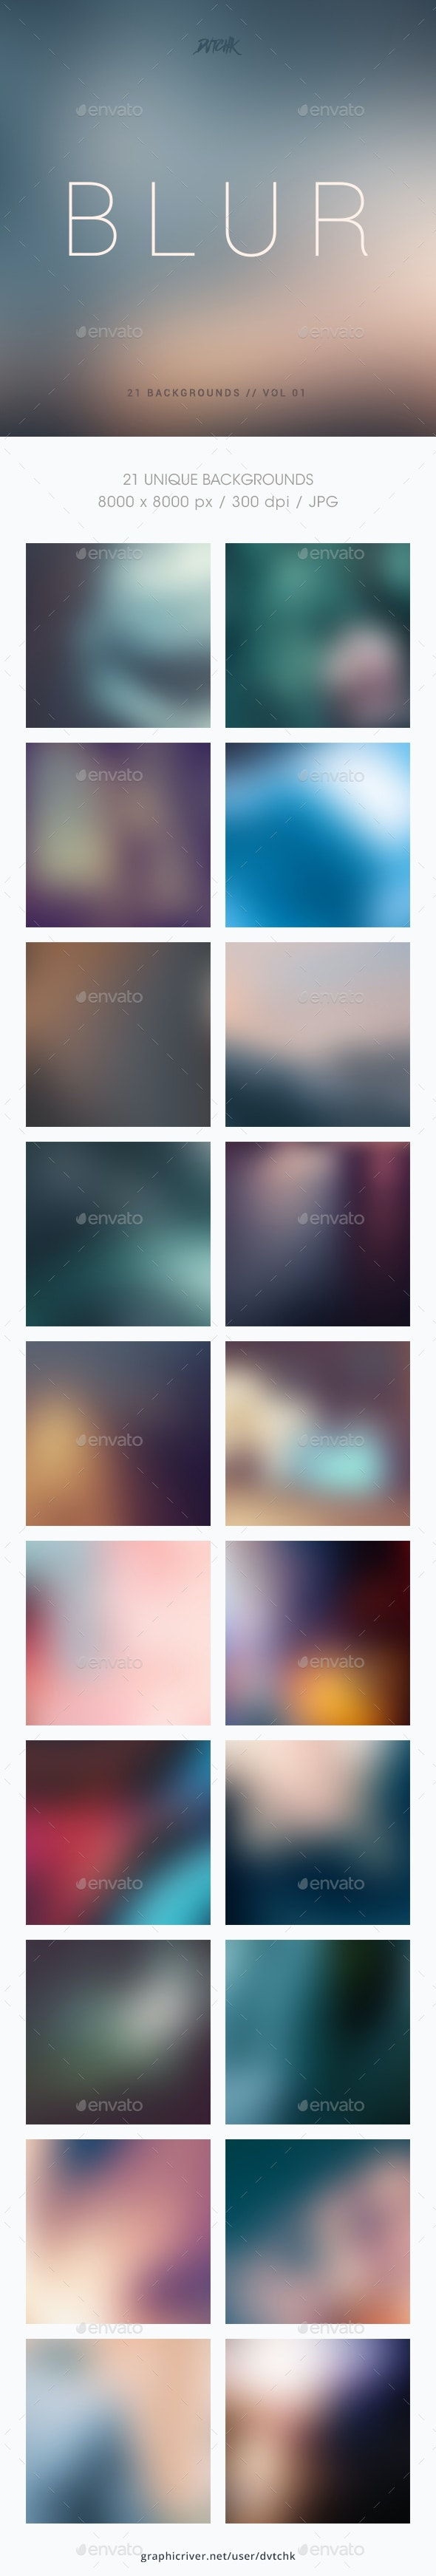 Blur | Smooth Backgrounds | Vol. 01 - Abstract Backgrounds